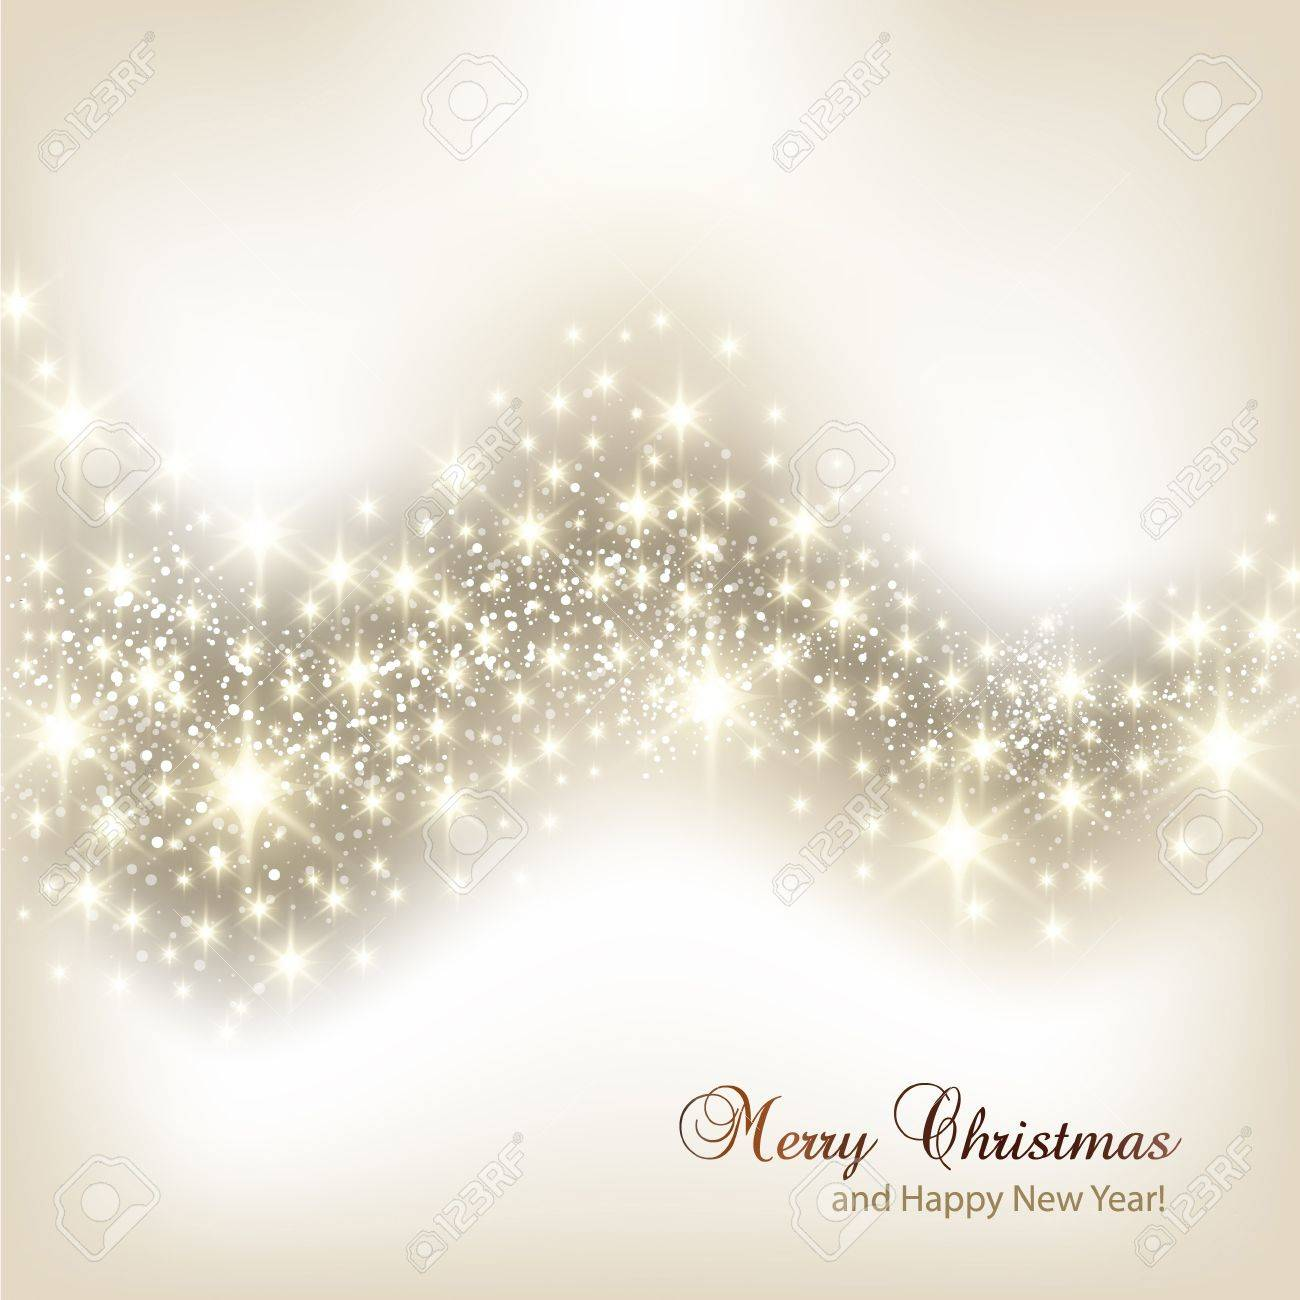 Elegant Christmas Background Images.Elegant Christmas Background With Snowflakes And Place For Text